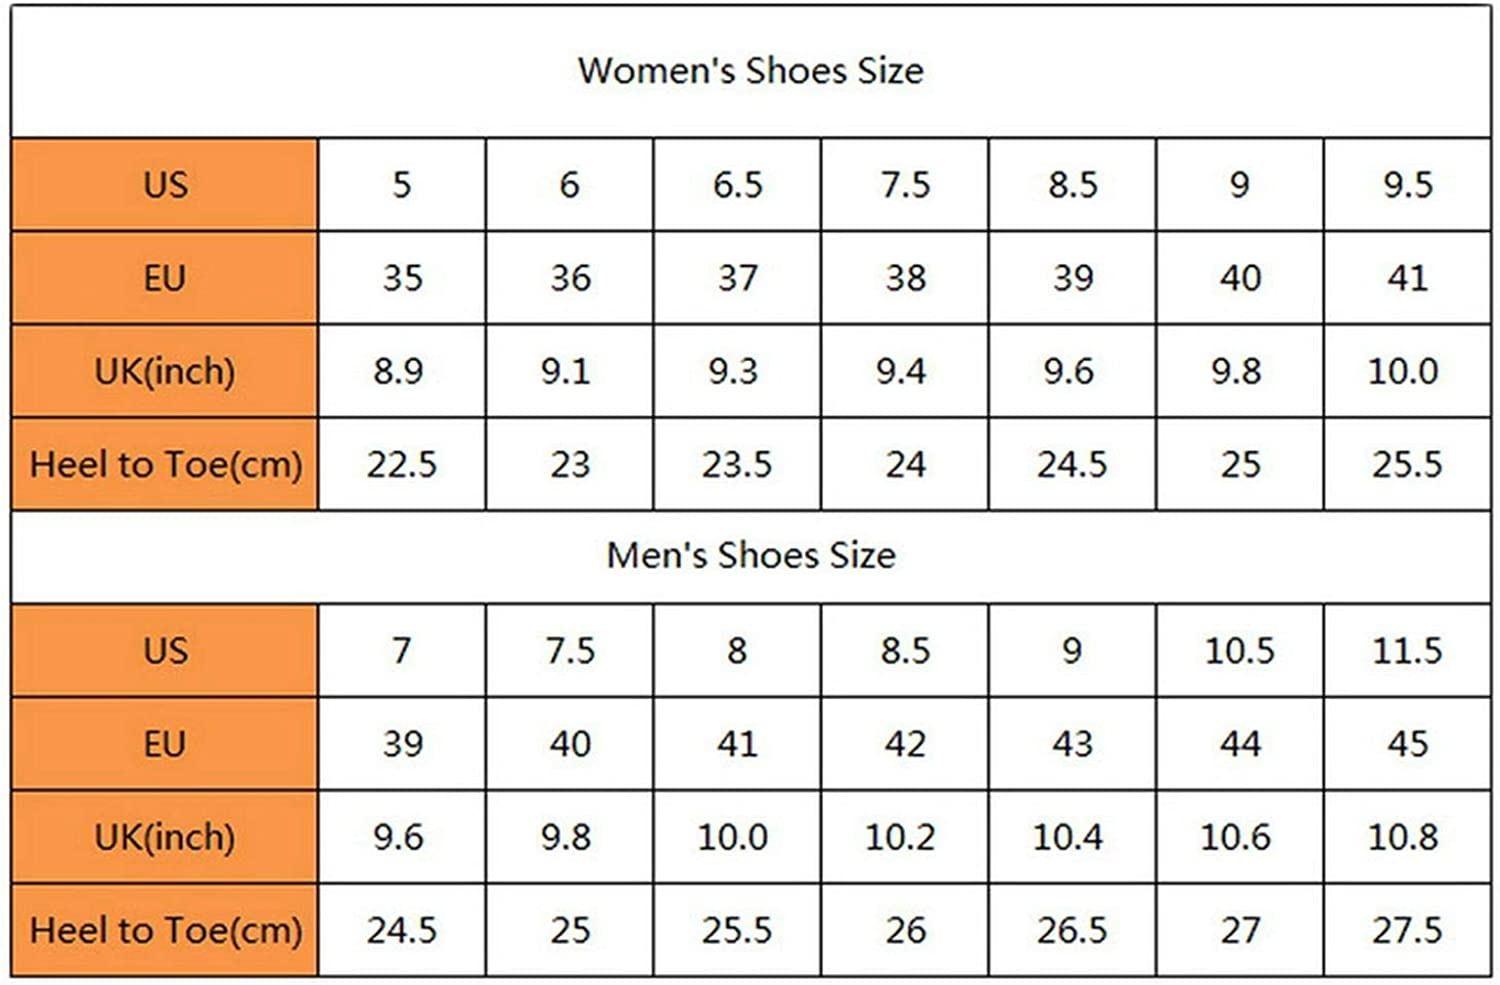 better-caress Women Sandals Slip-On Peep Toe Casual Woman Shoes New Leather Soft Giator,Yellow,7.5,